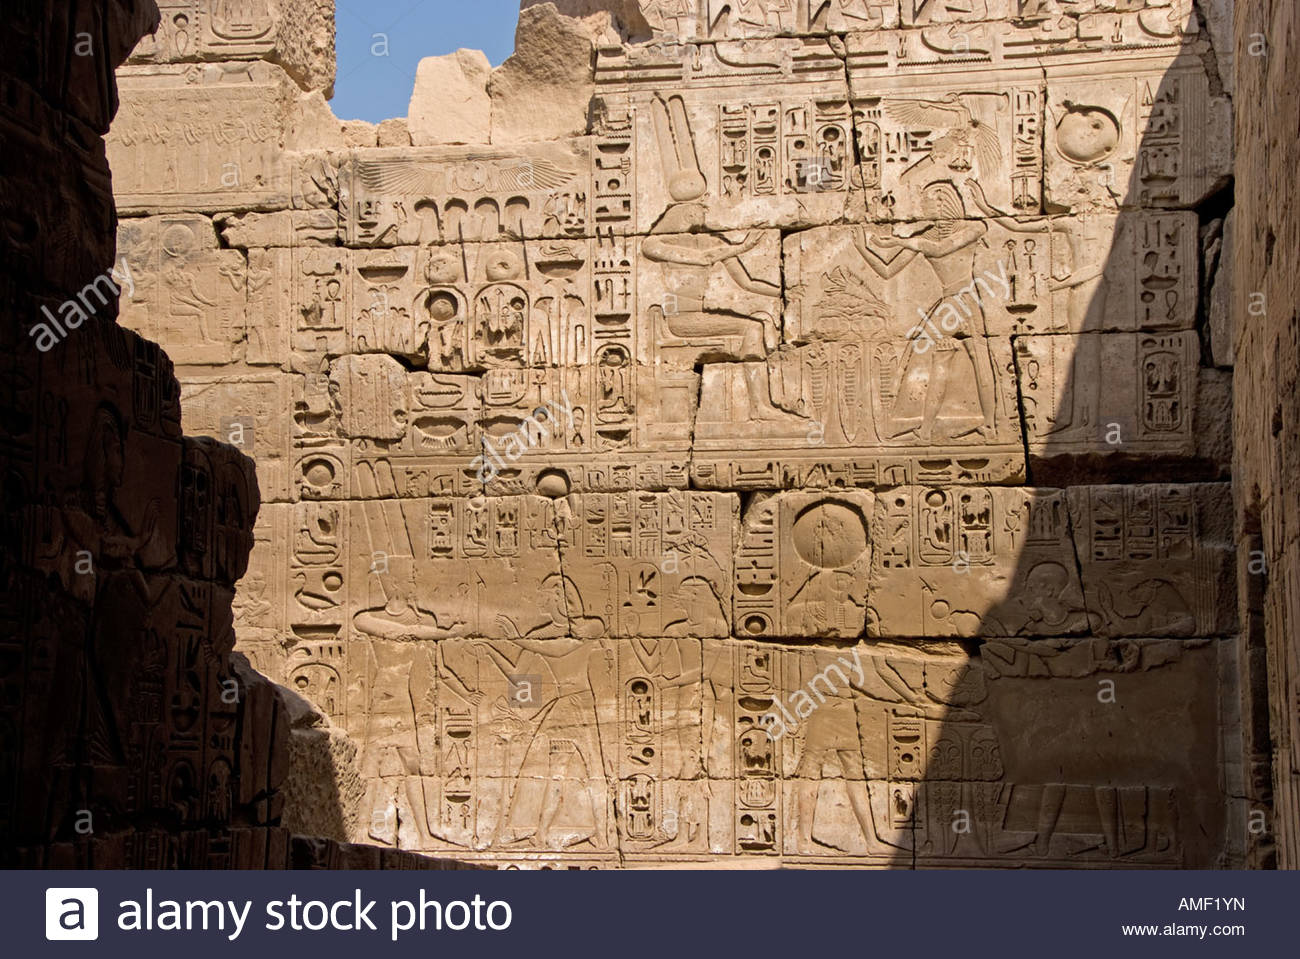 Egyptian carvings on interior wall of khonsu temple at